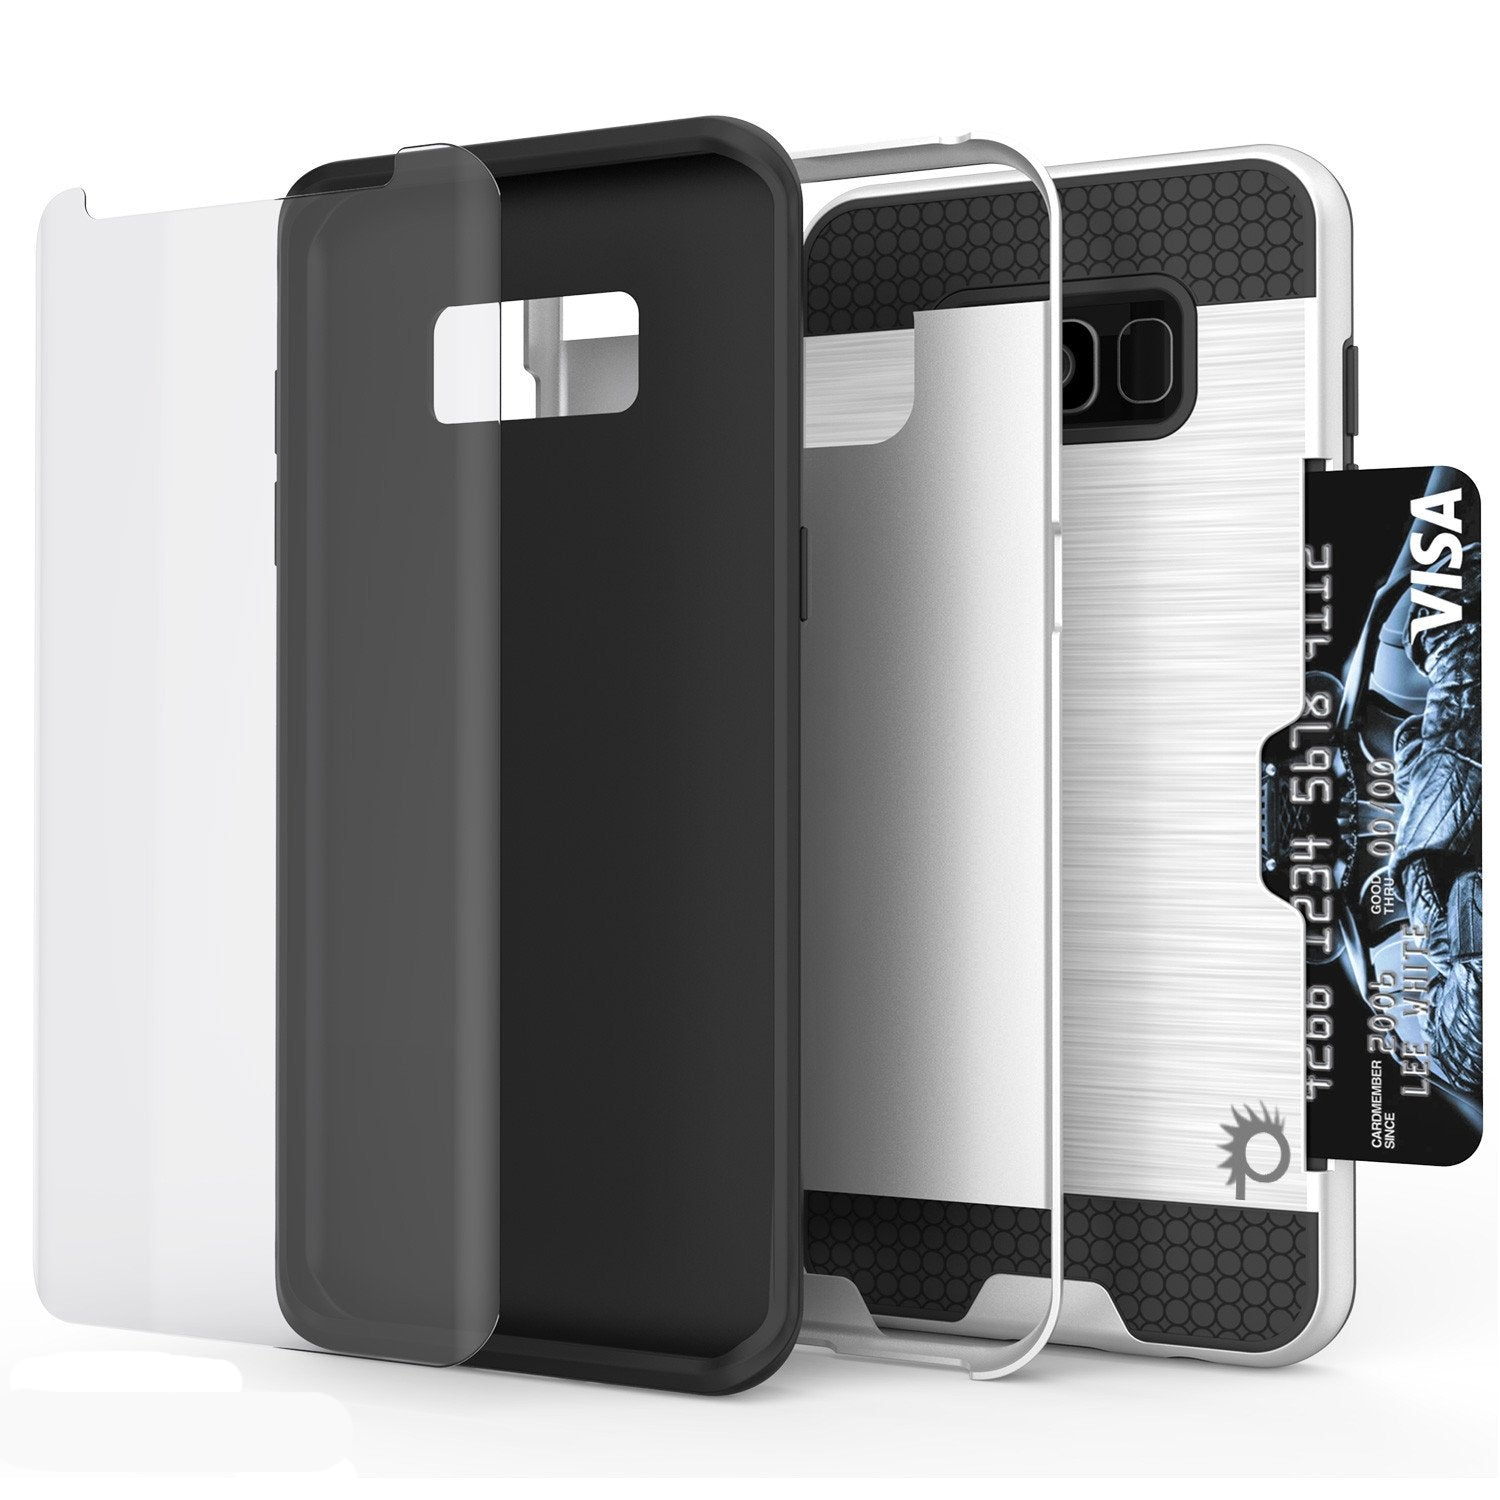 Galaxy S8 Case, PUNKcase [SLOT Series] [Slim Fit] Dual-Layer Armor Cover w/Integrated Anti-Shock System, Credit Card Slot & Screen Protector